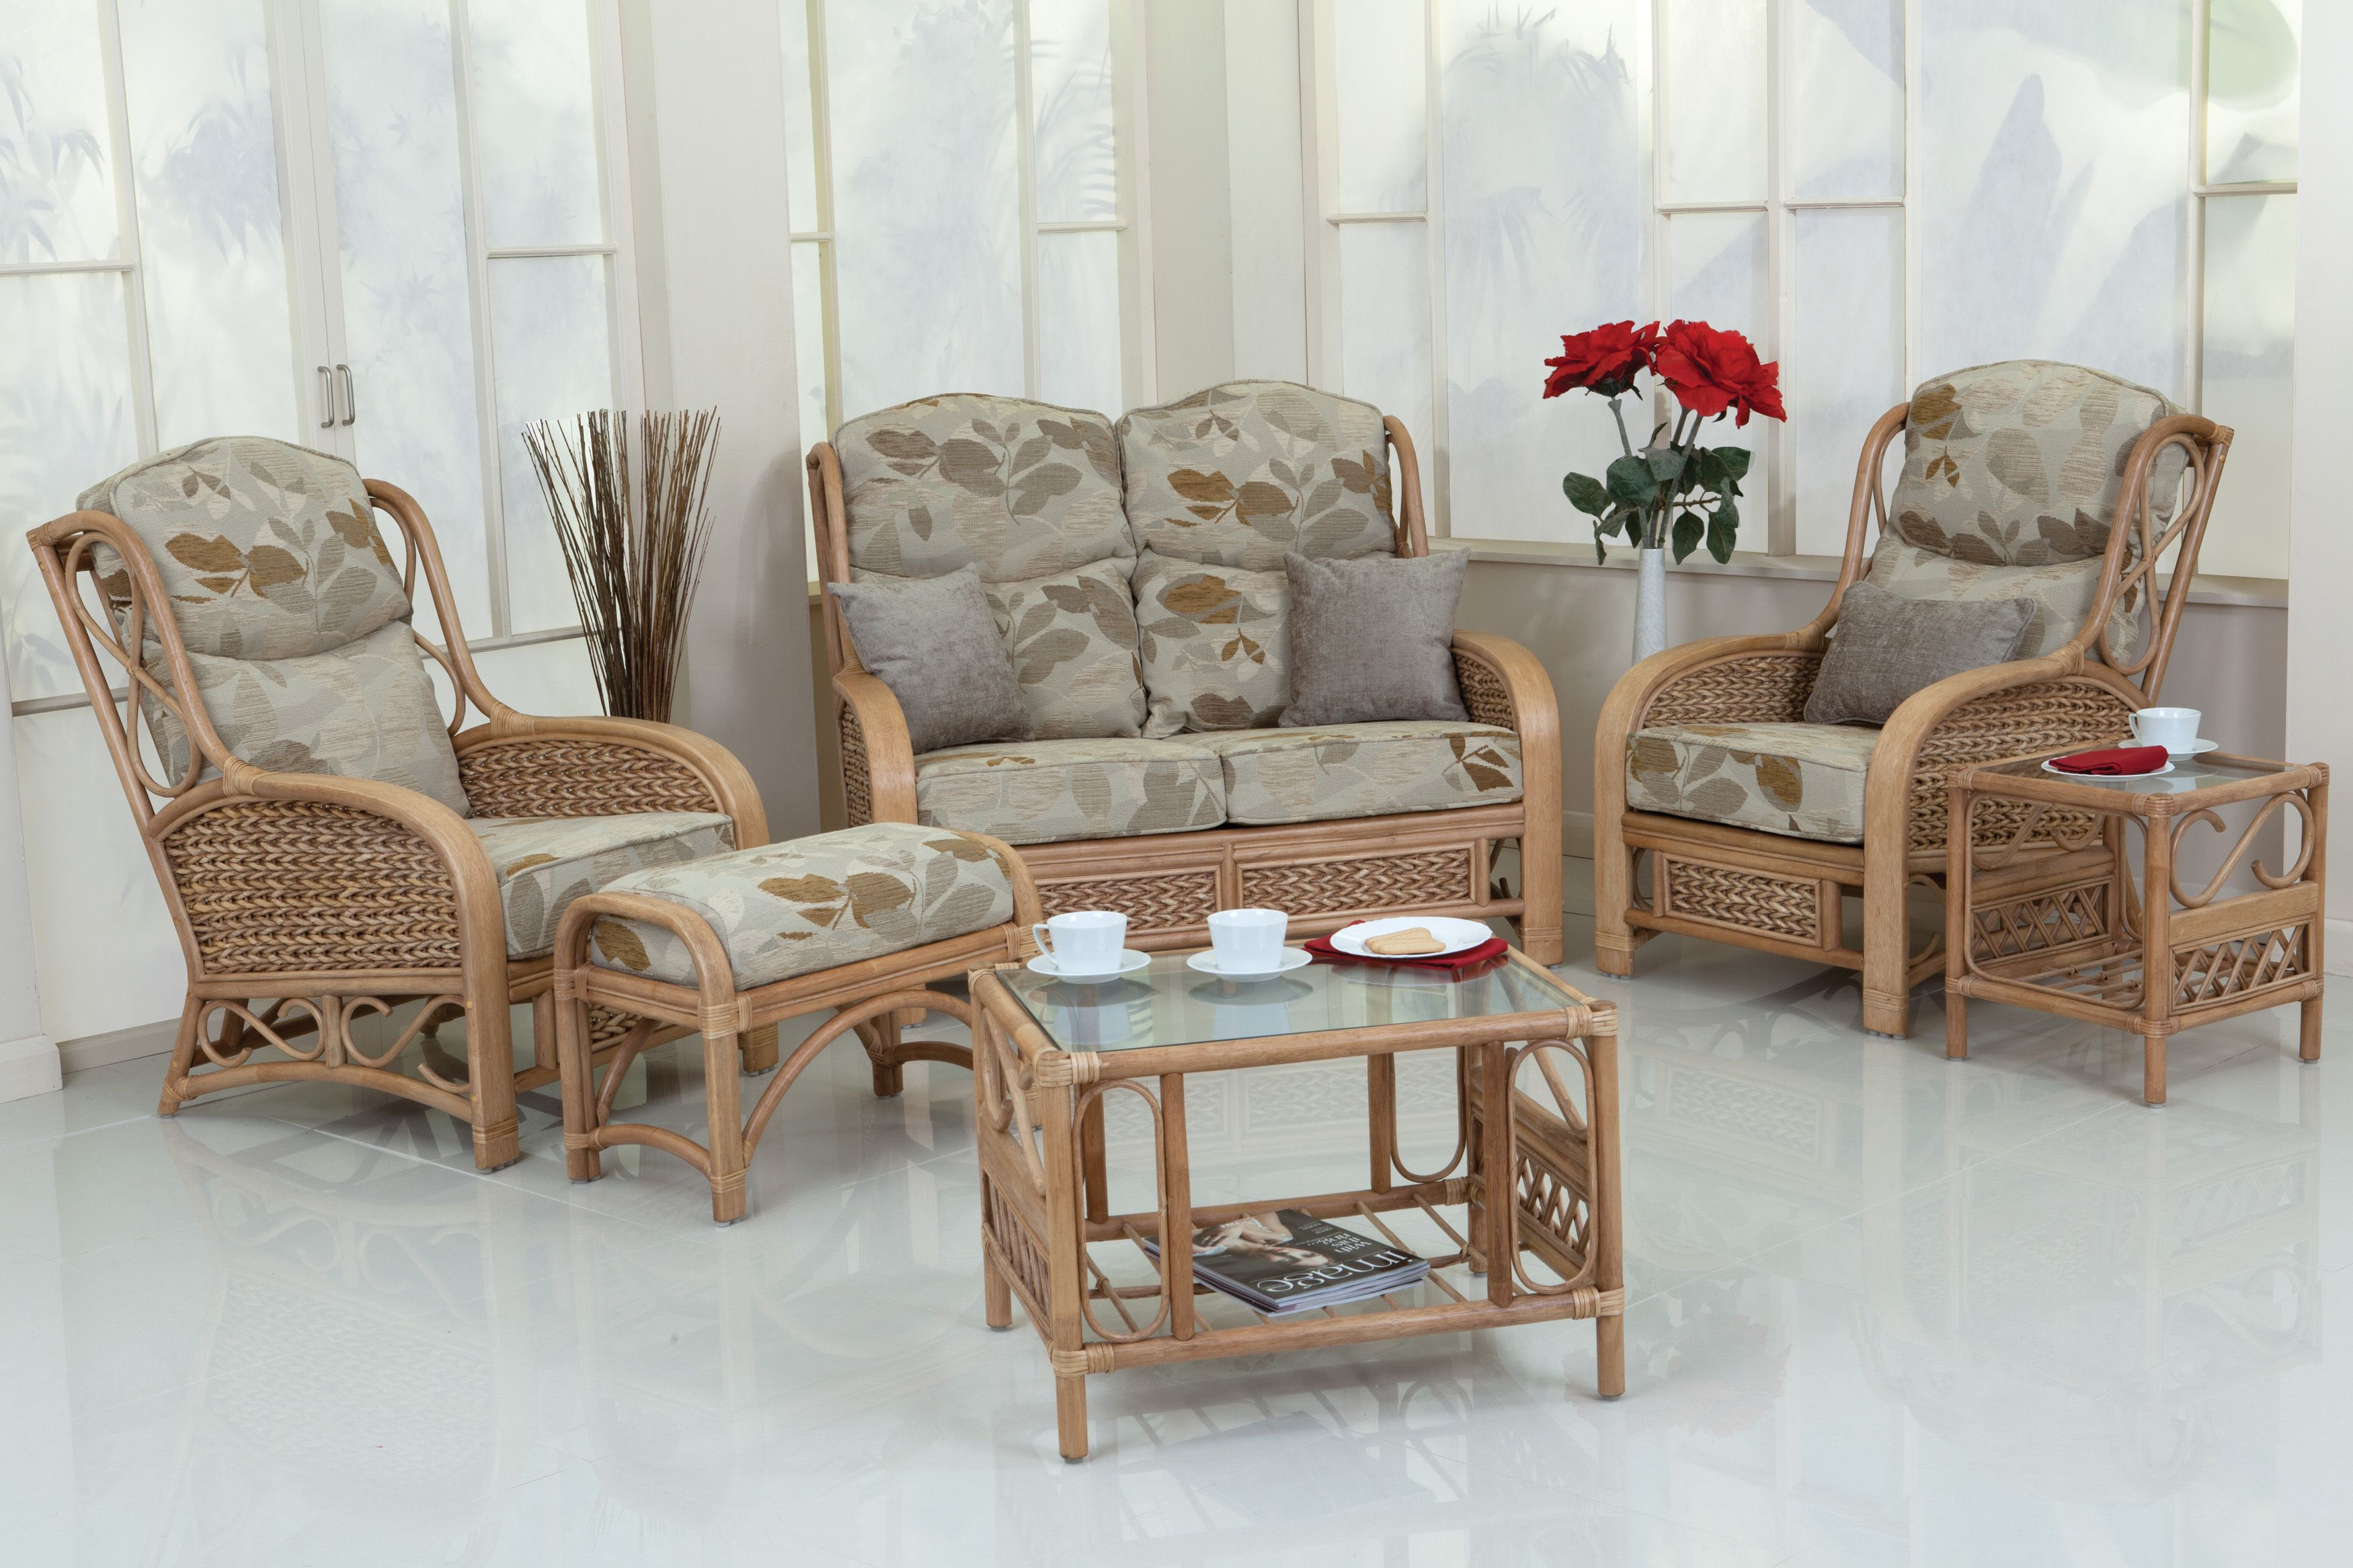 Rattan & Cane Conservatory Furniture | Conservatory Furniture ...